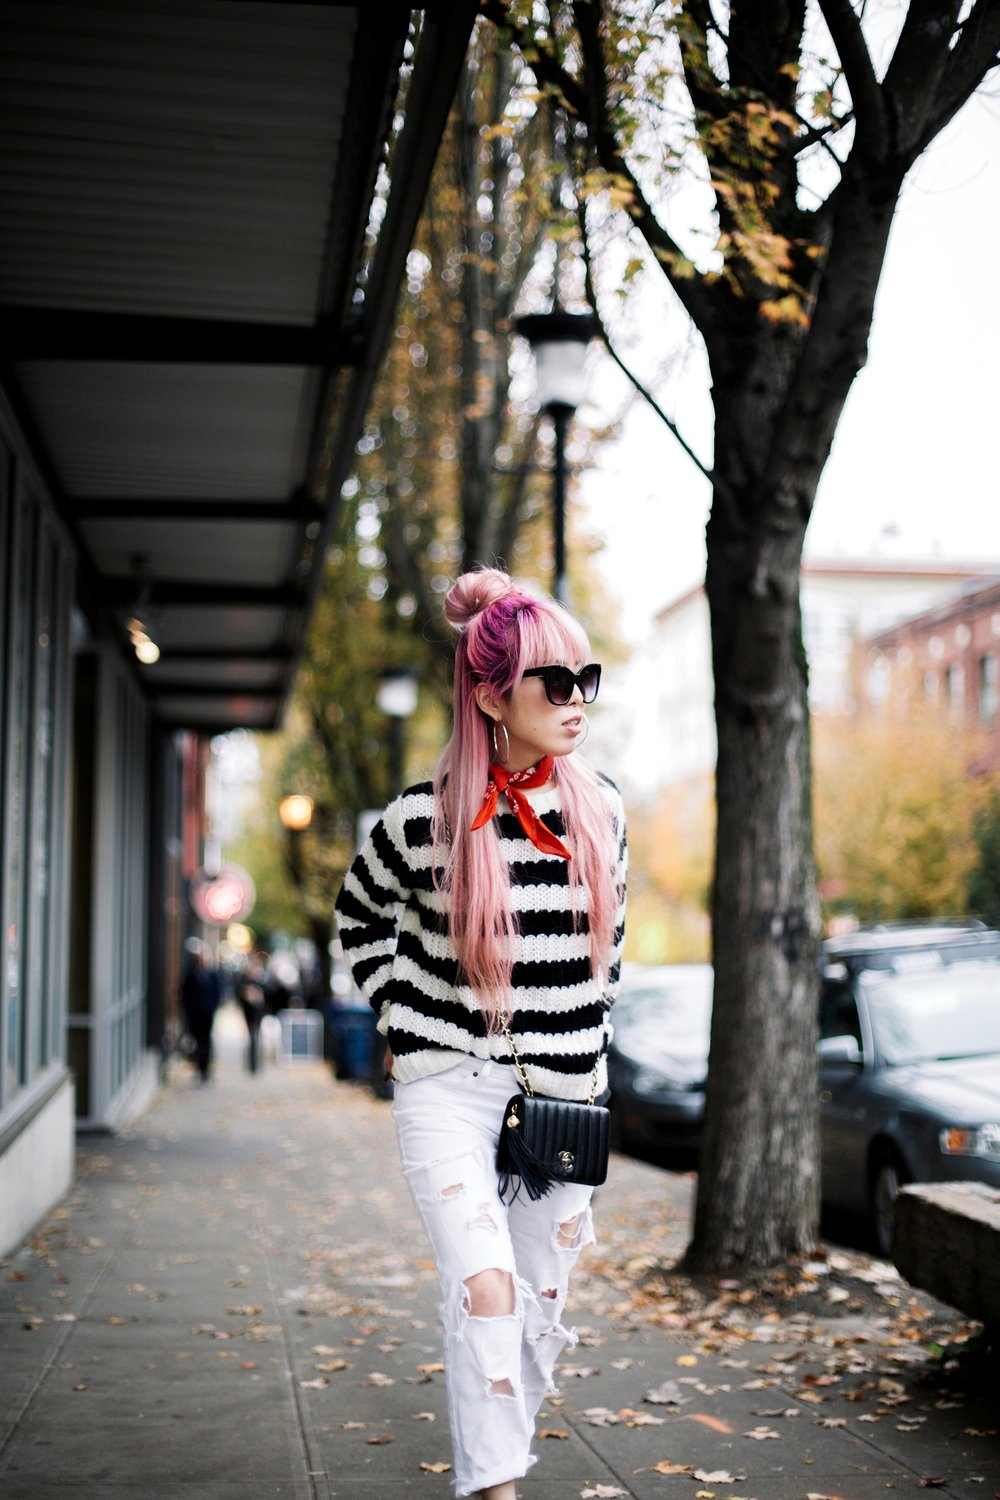 Urban Outfitters Sunglasses & Red bandana-Who What Wear Striped Crew Sweater-Target-Zara Distressed white boyfriend Jeans & Black Sheer Top-Vintage Chanel Crossbody Bag-ASOS Ankle Strap Sandals-Christian Paul Grid White Watch-Aika's Love Closet-Seattle Fashion Blogger-Japanese-Pink Hair-Half Top Knot Hair 10